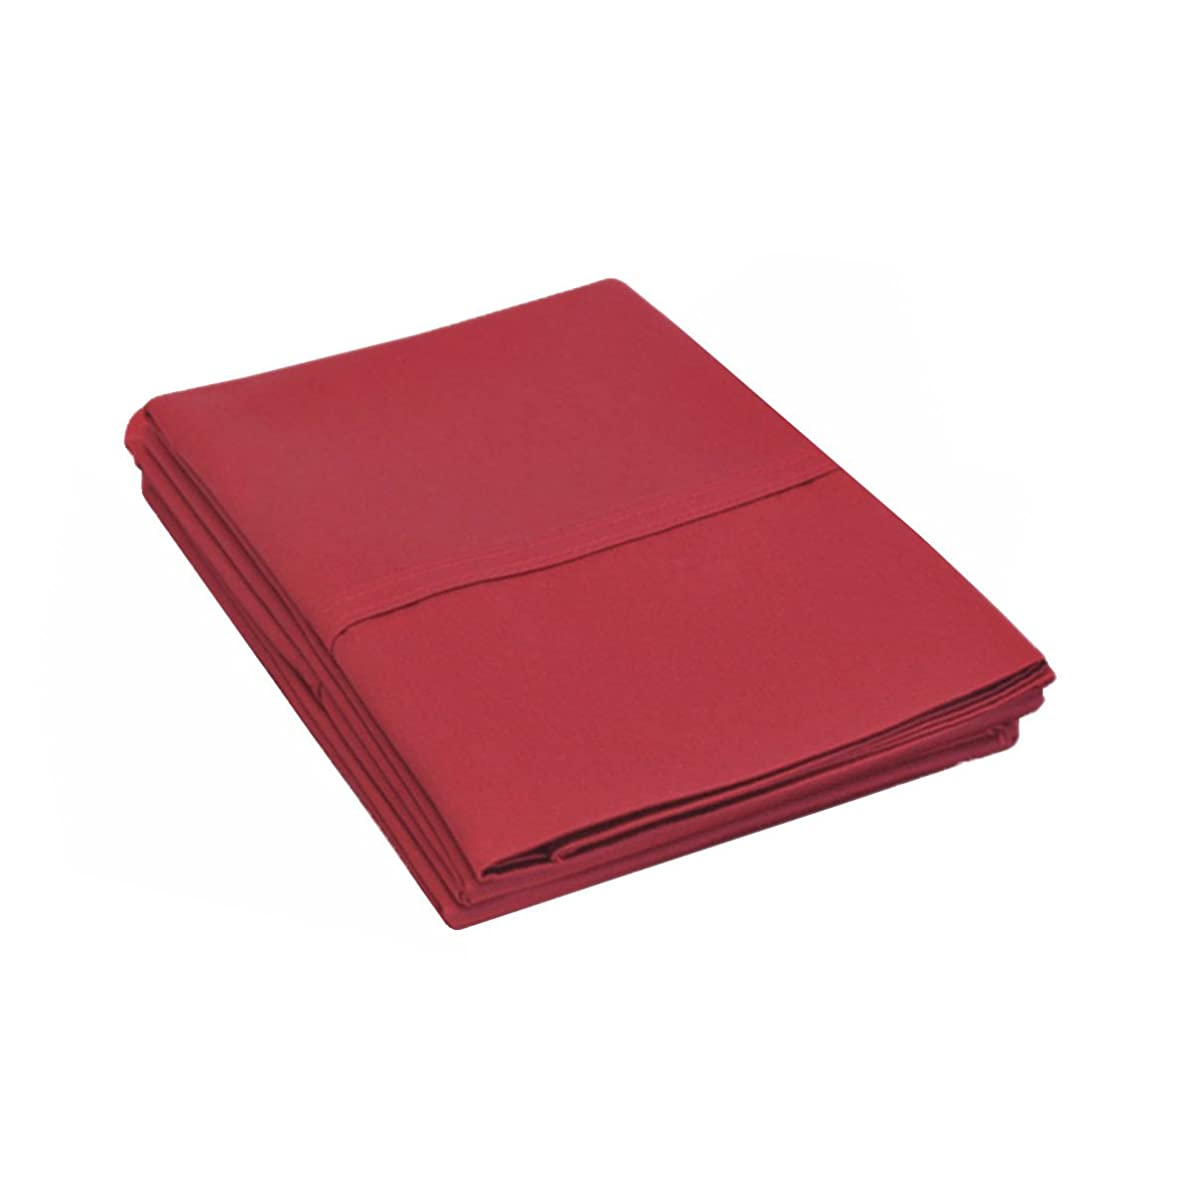 800 Thread Count, 100% Cotton, Single Ply, 2-Piece King Pillowcase Set, Solid, Burgundy